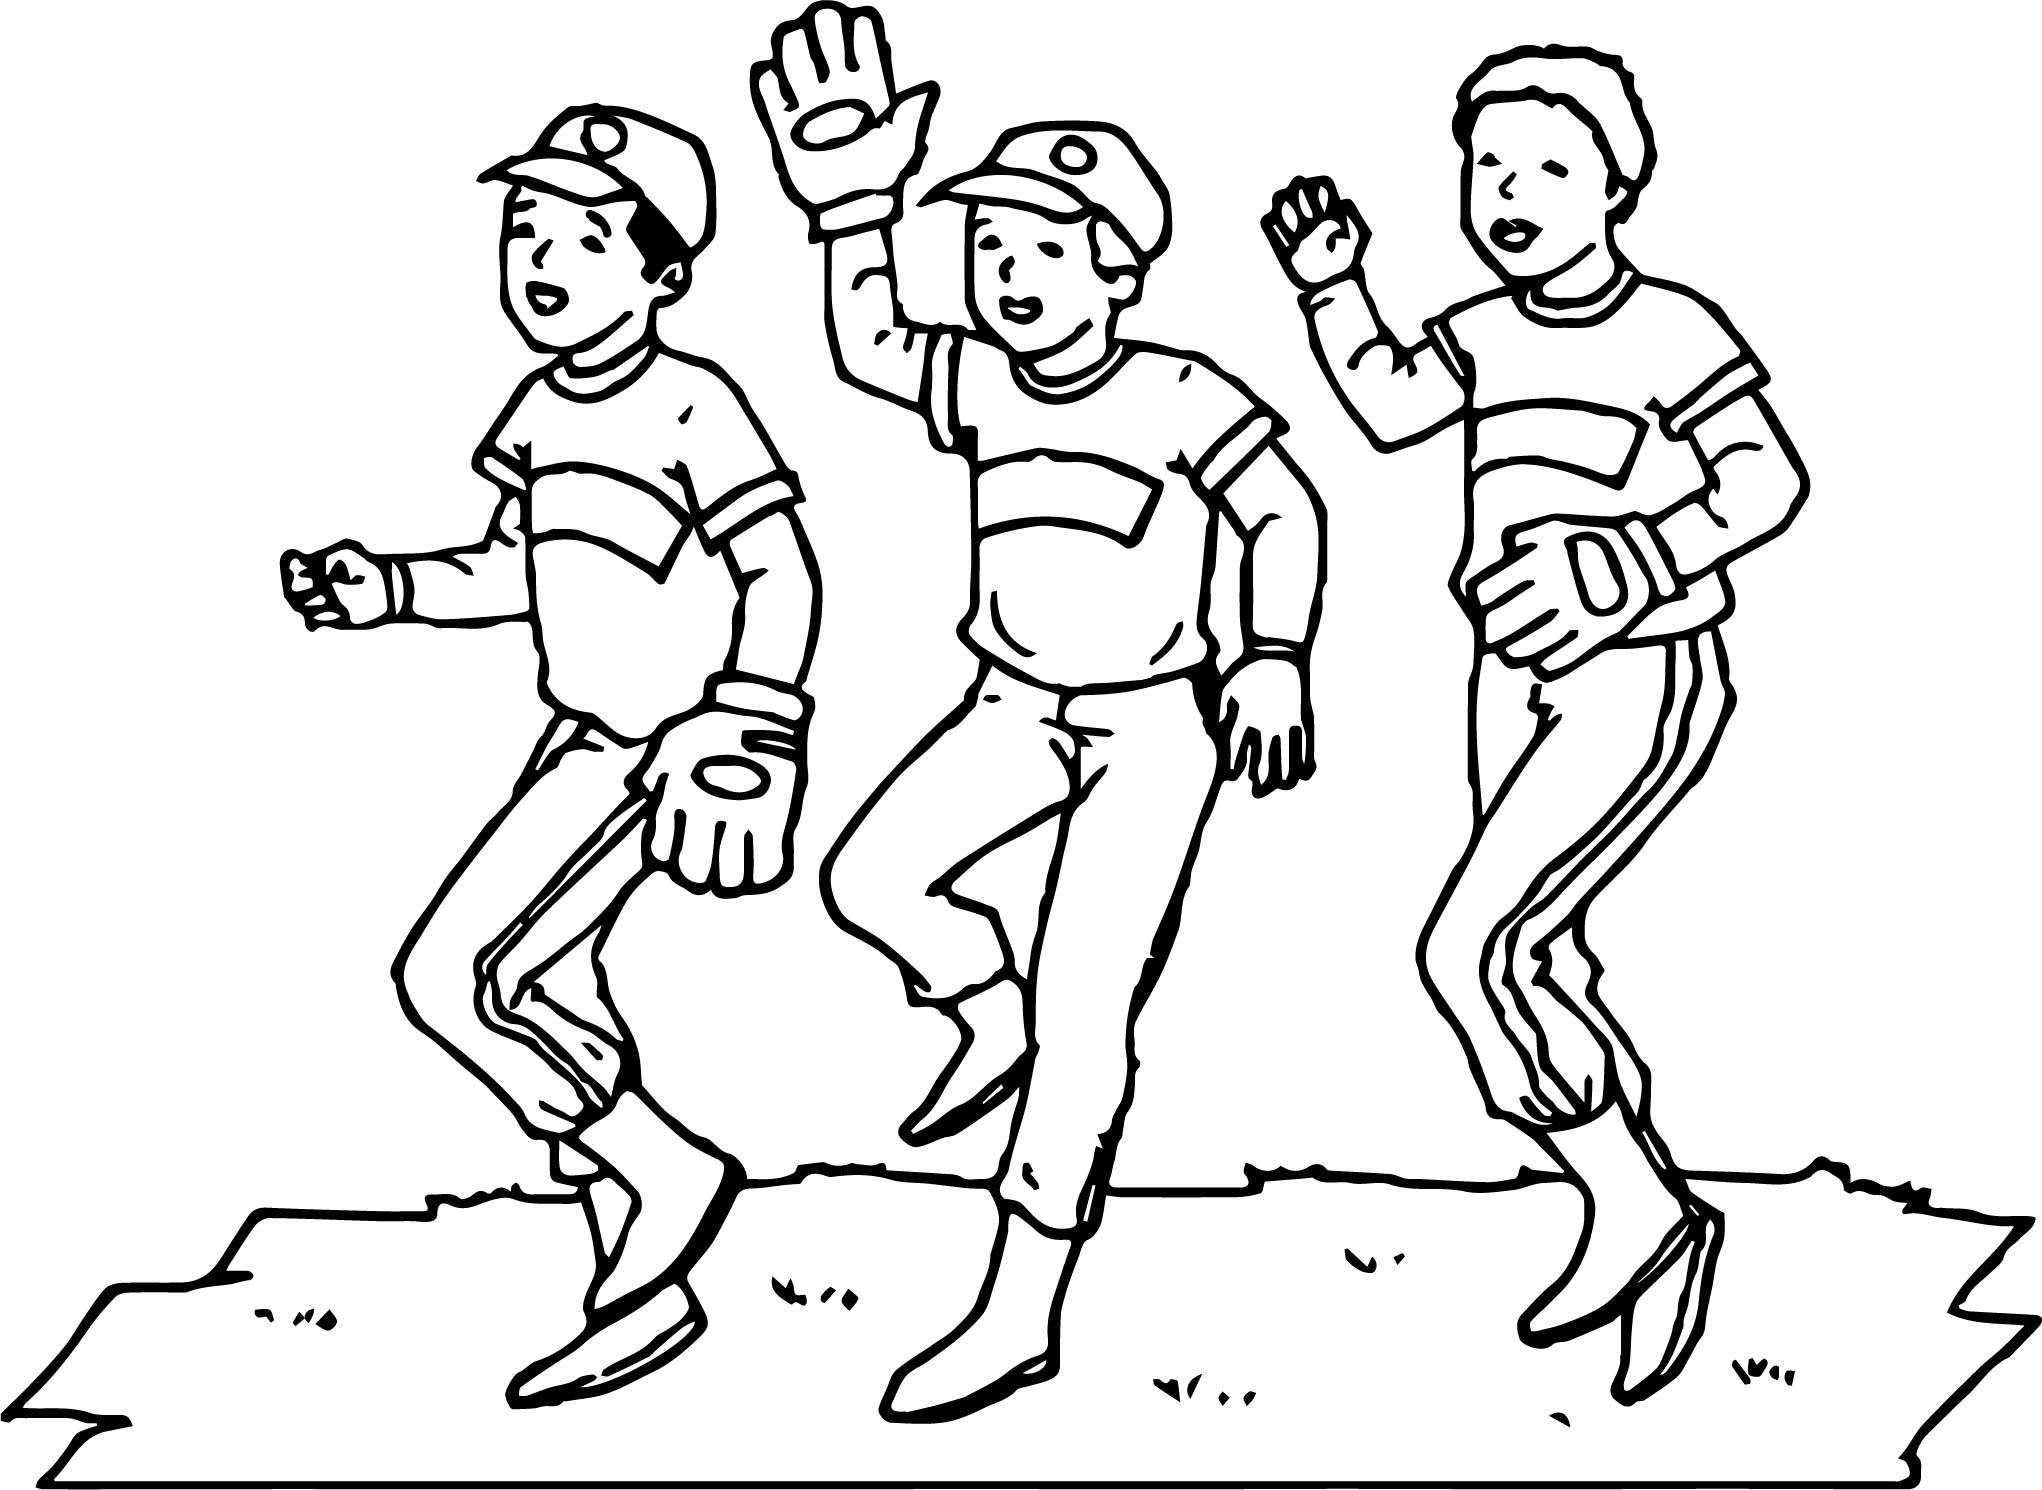 baseball team playing baseball coloring page